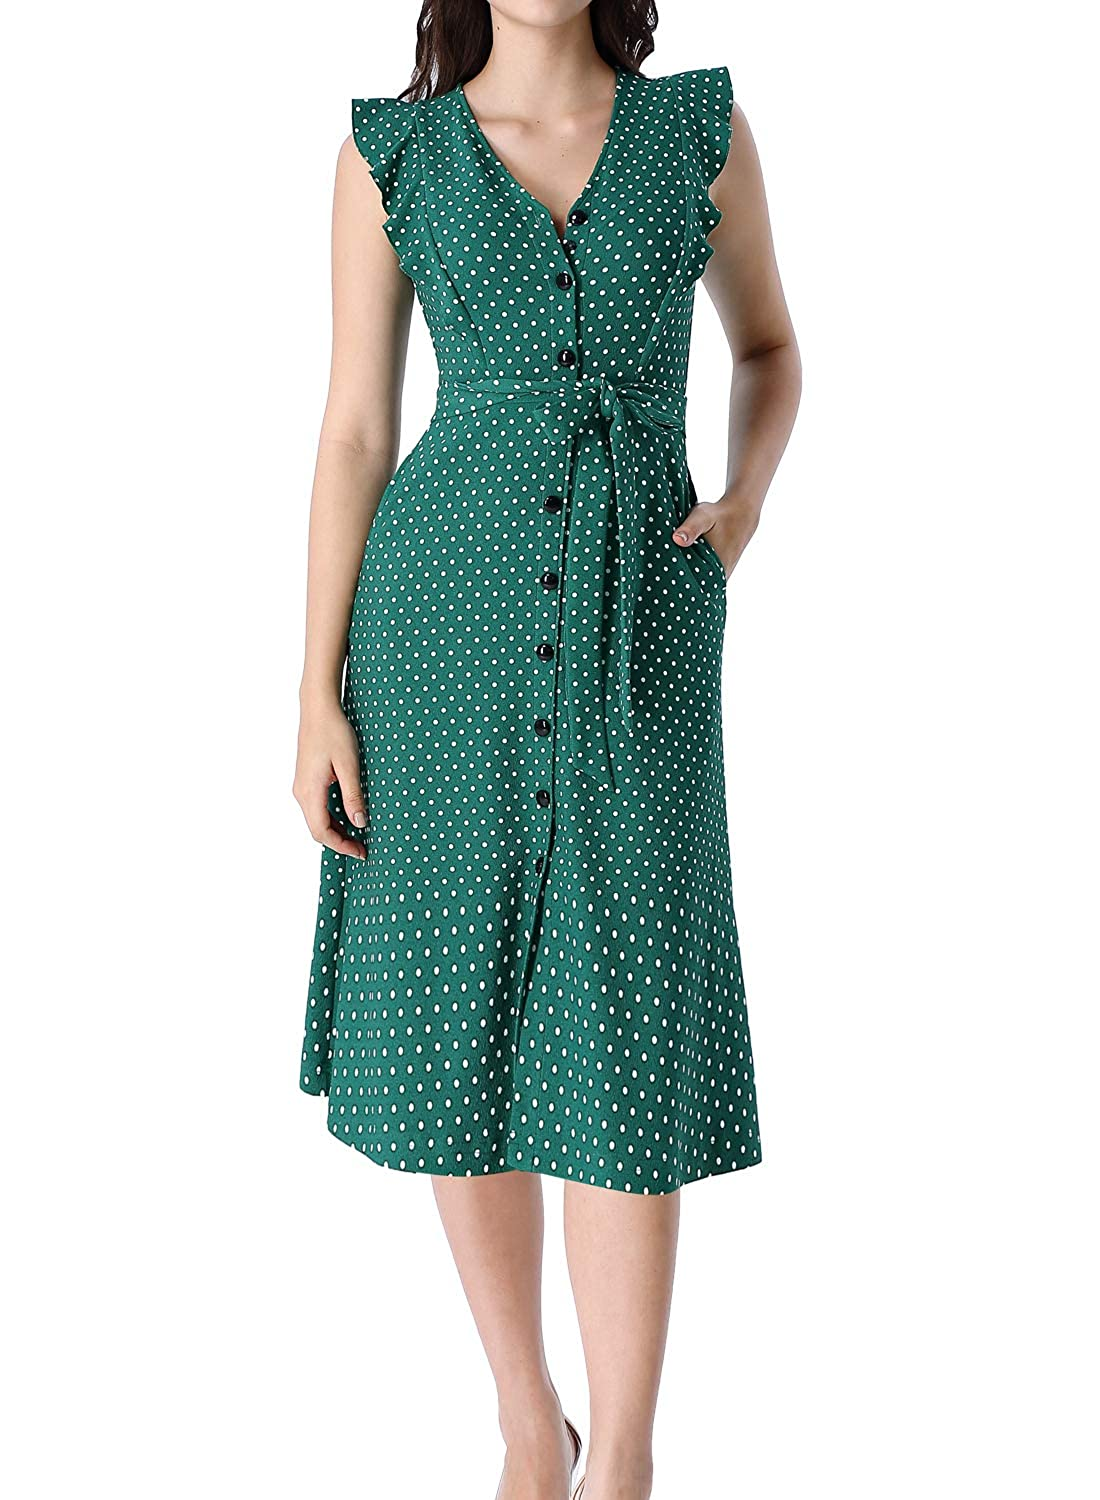 1930s Dresses | 30s Art Deco Dress VFSHOW Womens Ruffle Pockets Work Office Business Casual Party A-Line Midi Dress $36.99 AT vintagedancer.com